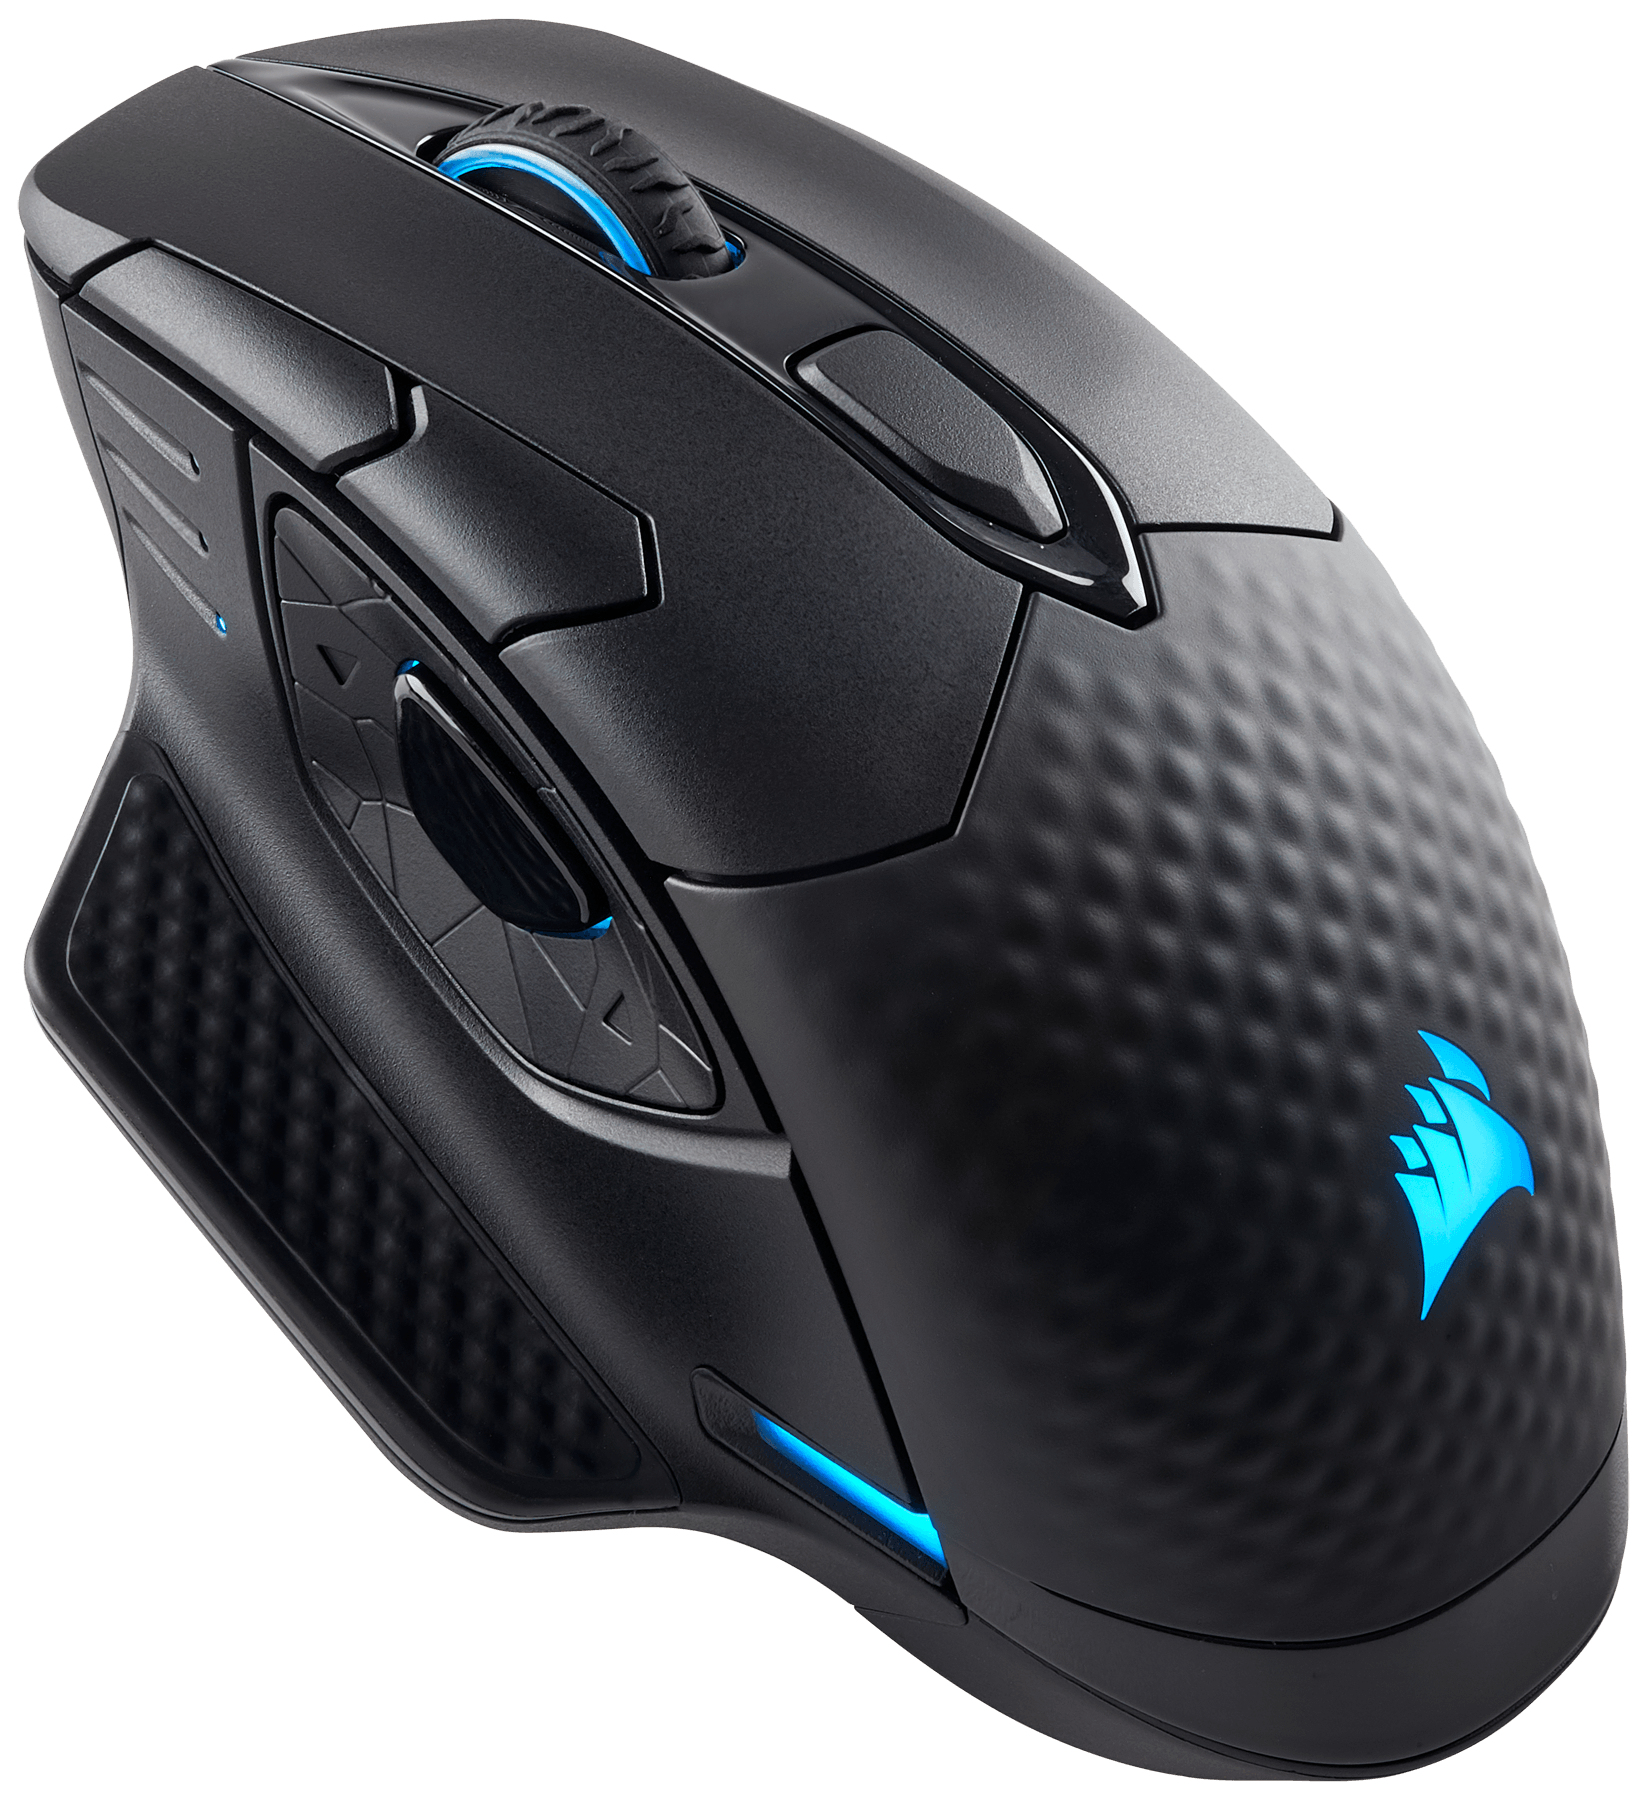 CORSAIR CH-9315011-EU DARK CORE RGB MICE BLUETOOTH+USB OPTICAL 16000 DPI RIGHT-HAND BLACK